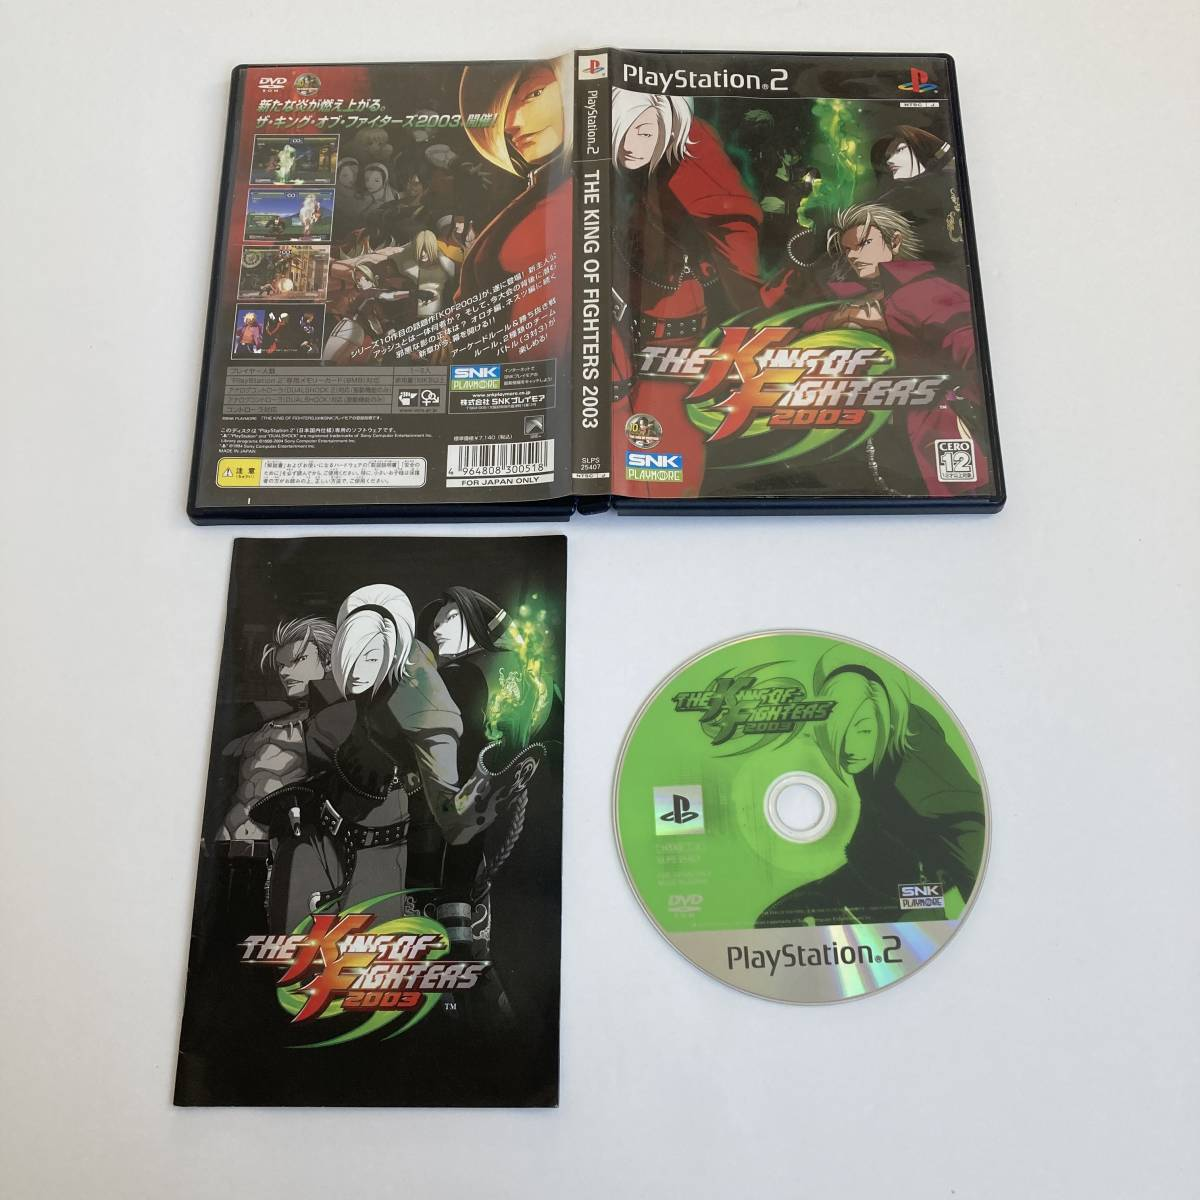 PS2用 ザ・キング・オブ・ファイターズ 4本セット / Lot 4 KOF The King of Fighters 2000 2001 2002 2003 PS2 Sony Playstation 2 Japan